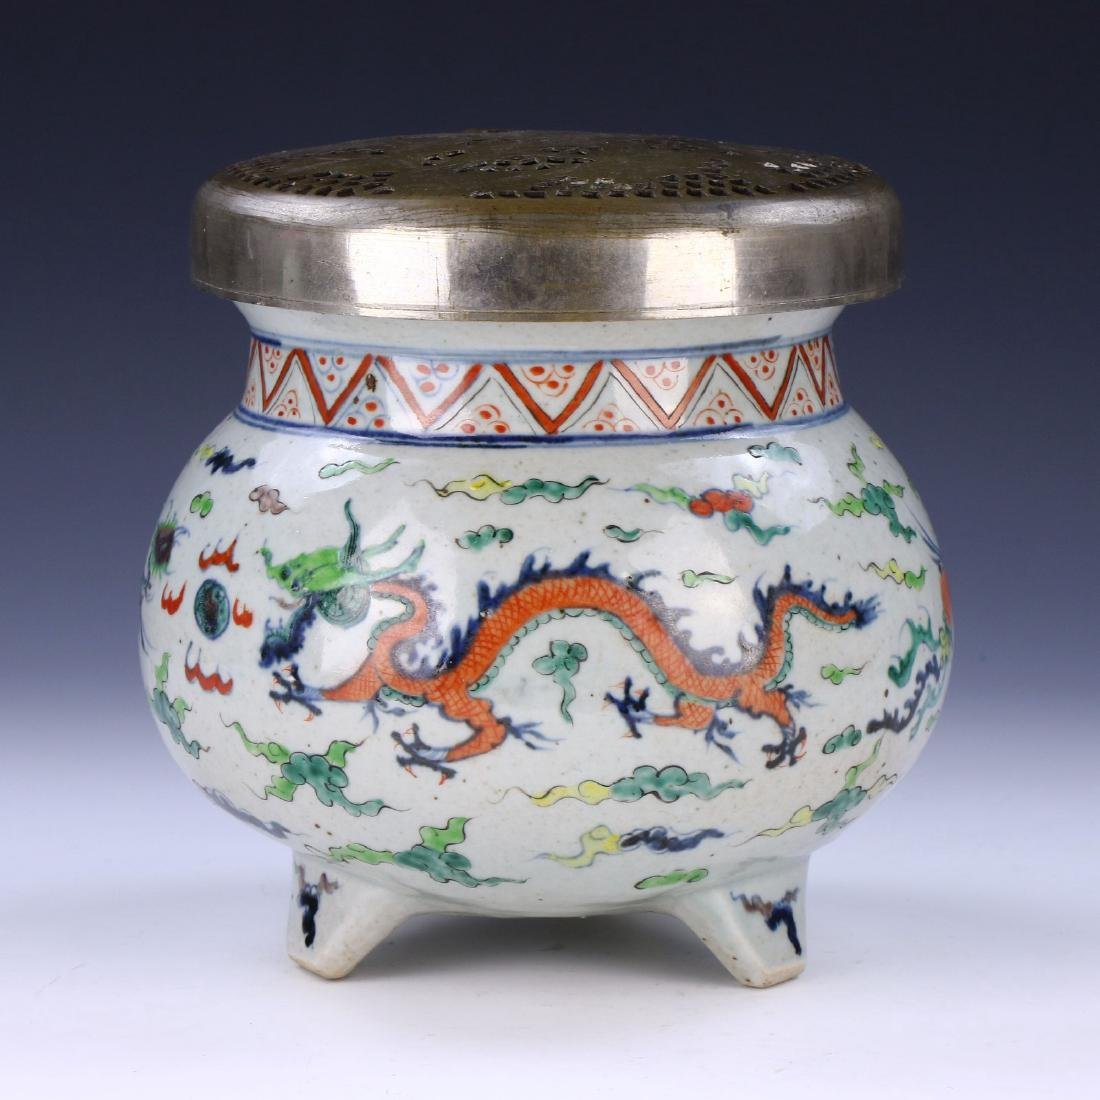 A CHINESE ANTIQUE FAMILLE ROSE LIDDED PORCELAIN TRIPOD